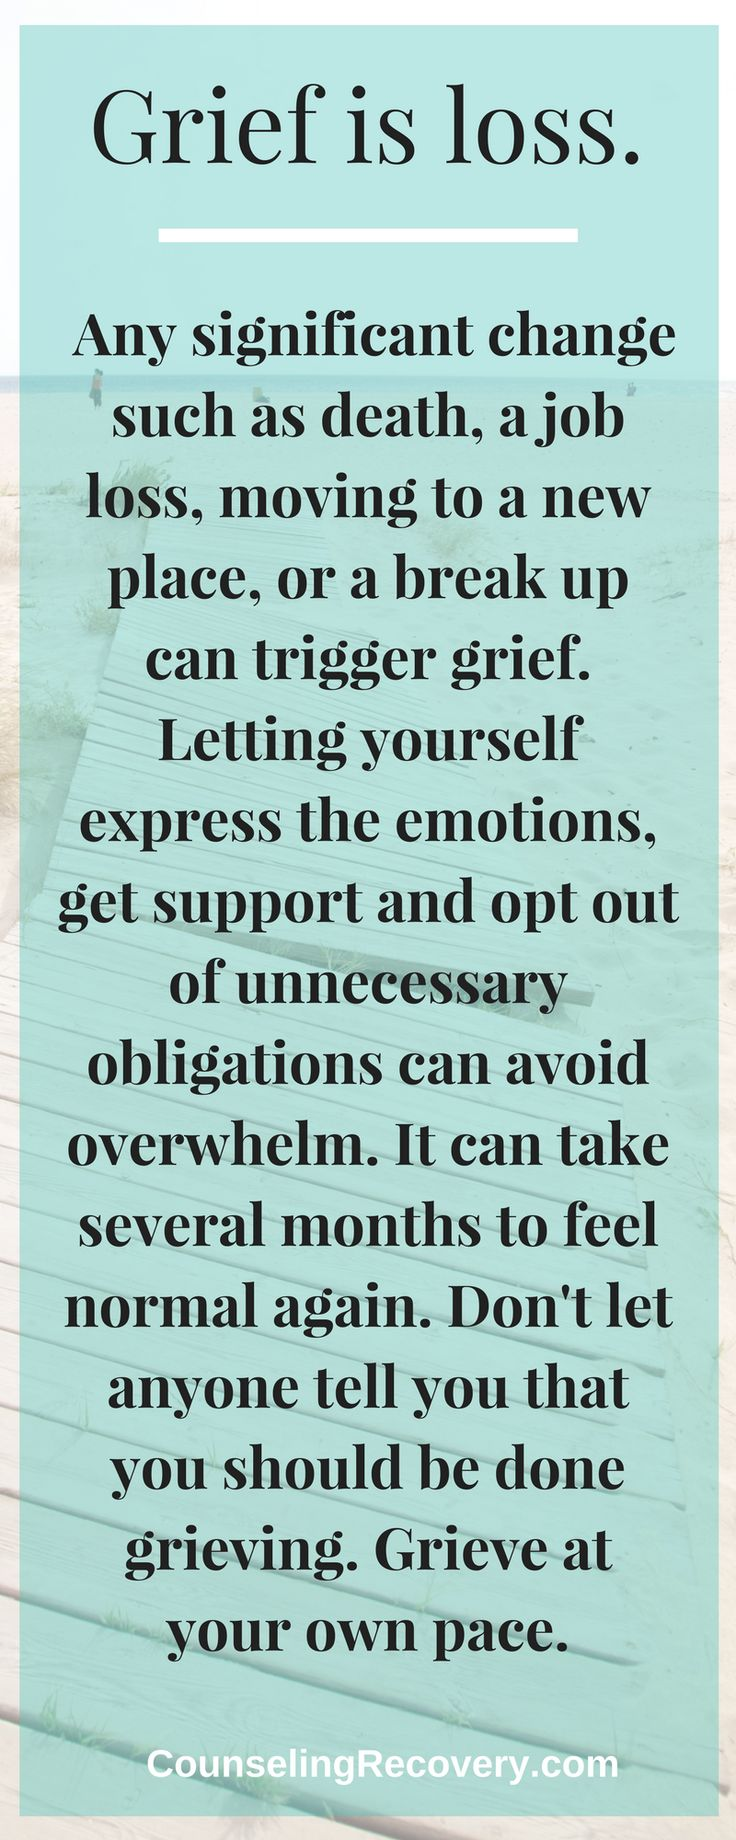 Quotes About Grieving Quotes About Life Tips For Managing Grief  Grief And Loss Quotes